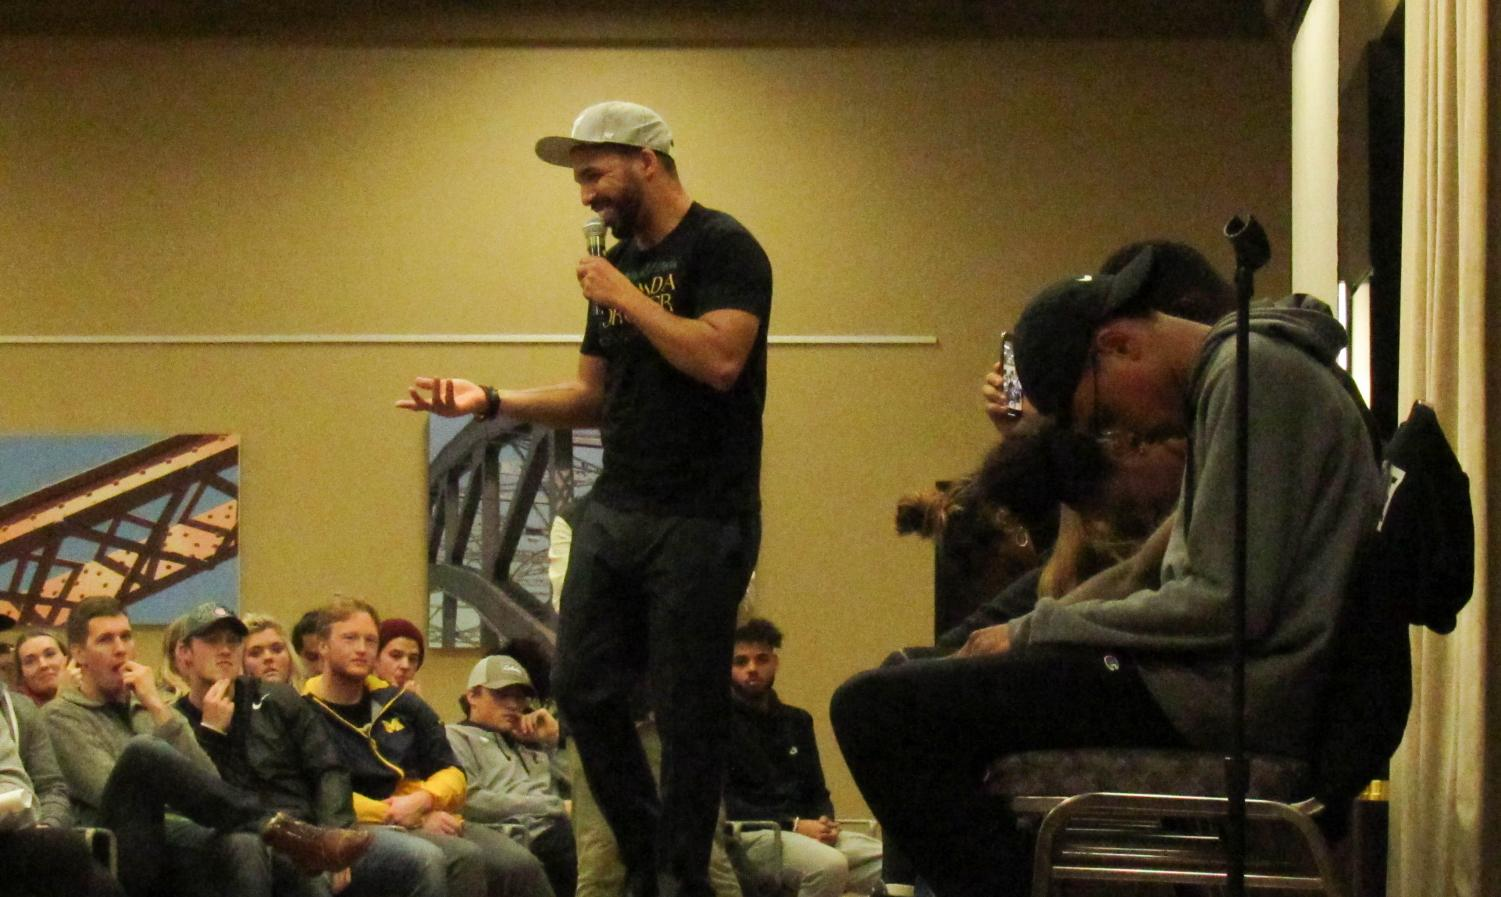 Chris Jones, hypnotist, takes student volunteers from the audience for his act.